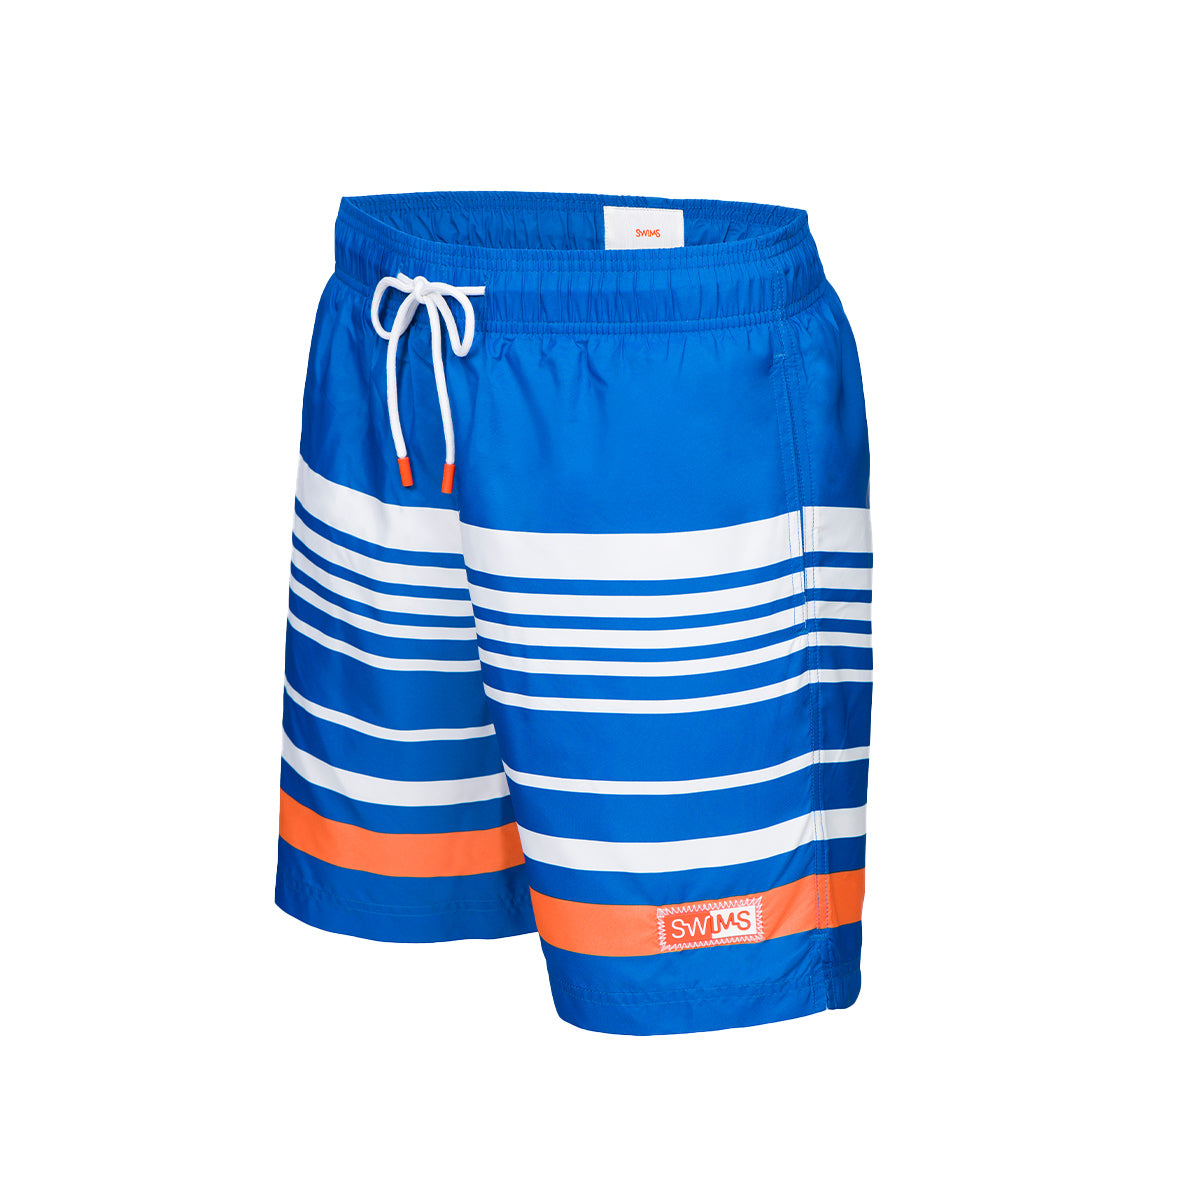 Lucea Logo Bathing Shorts - background::white,variant::navy